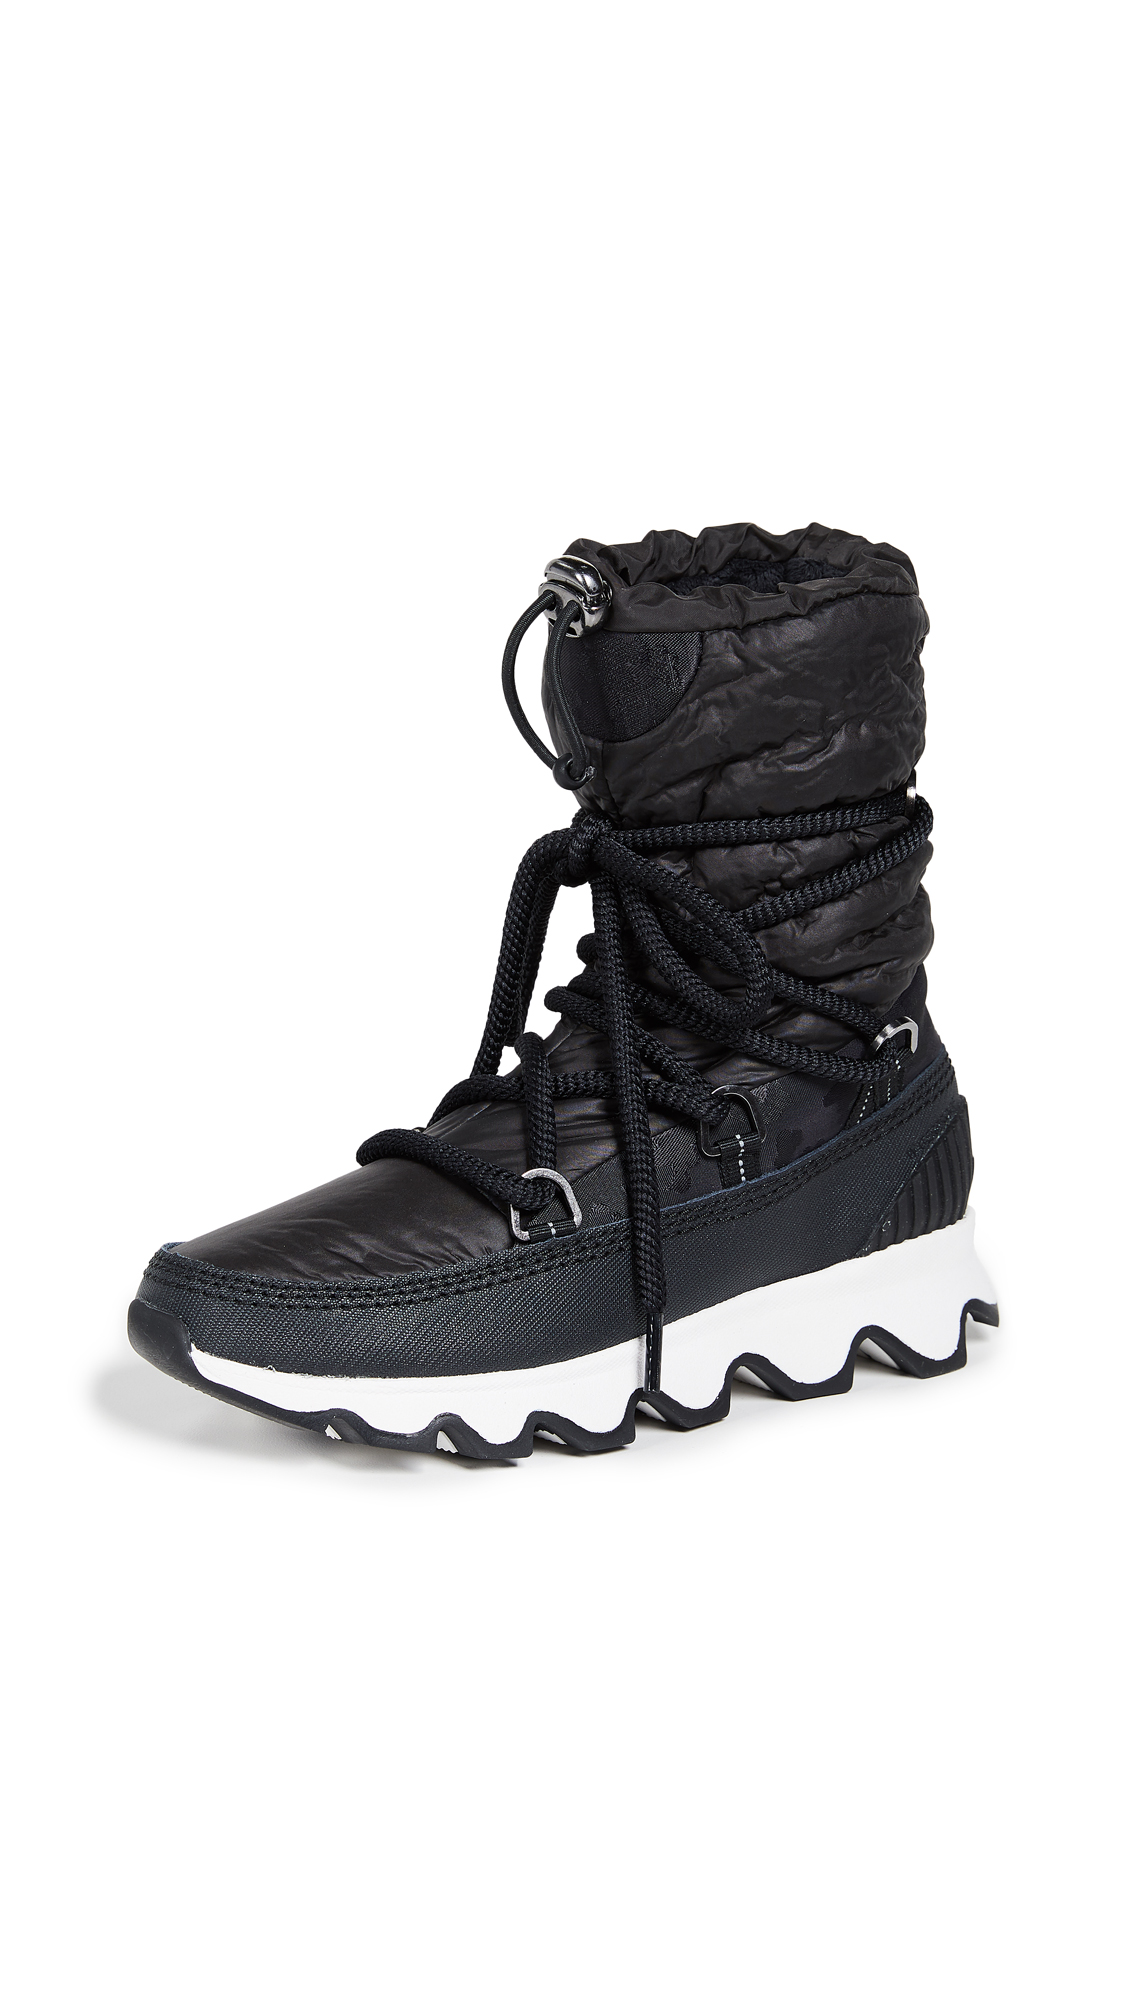 Sorel Kinetic Boots - Camo-Black/White